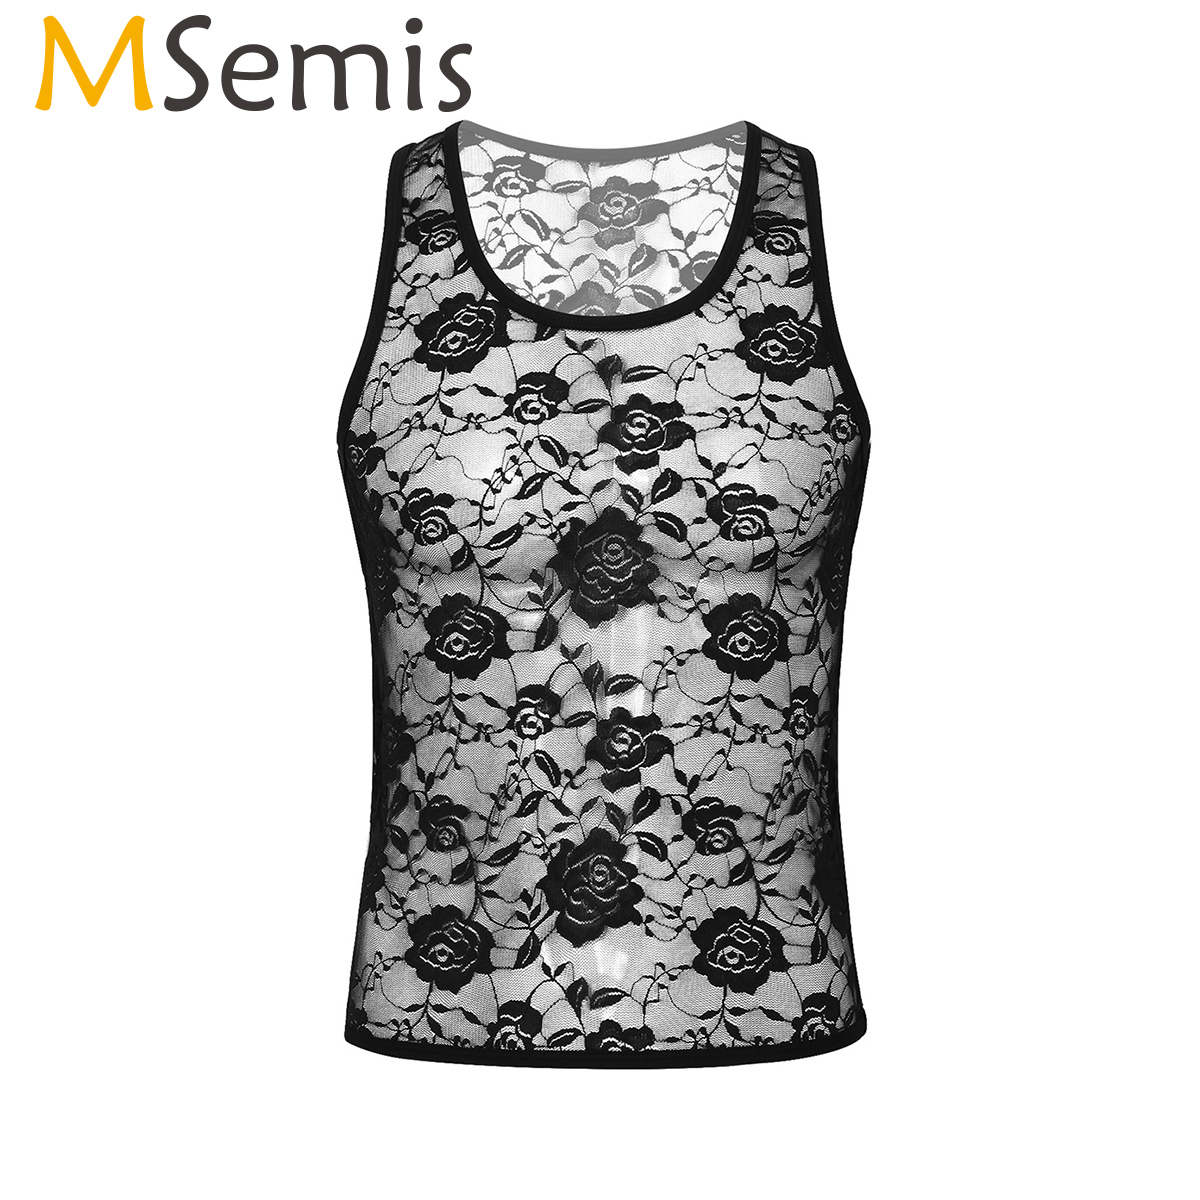 MSemis Mens Crossdressing Sissy Hot Sexy Lingerie Sleeveless Mesh Sheer Floral Lace Muscle Fitted T-Shirt Gay Tank Top